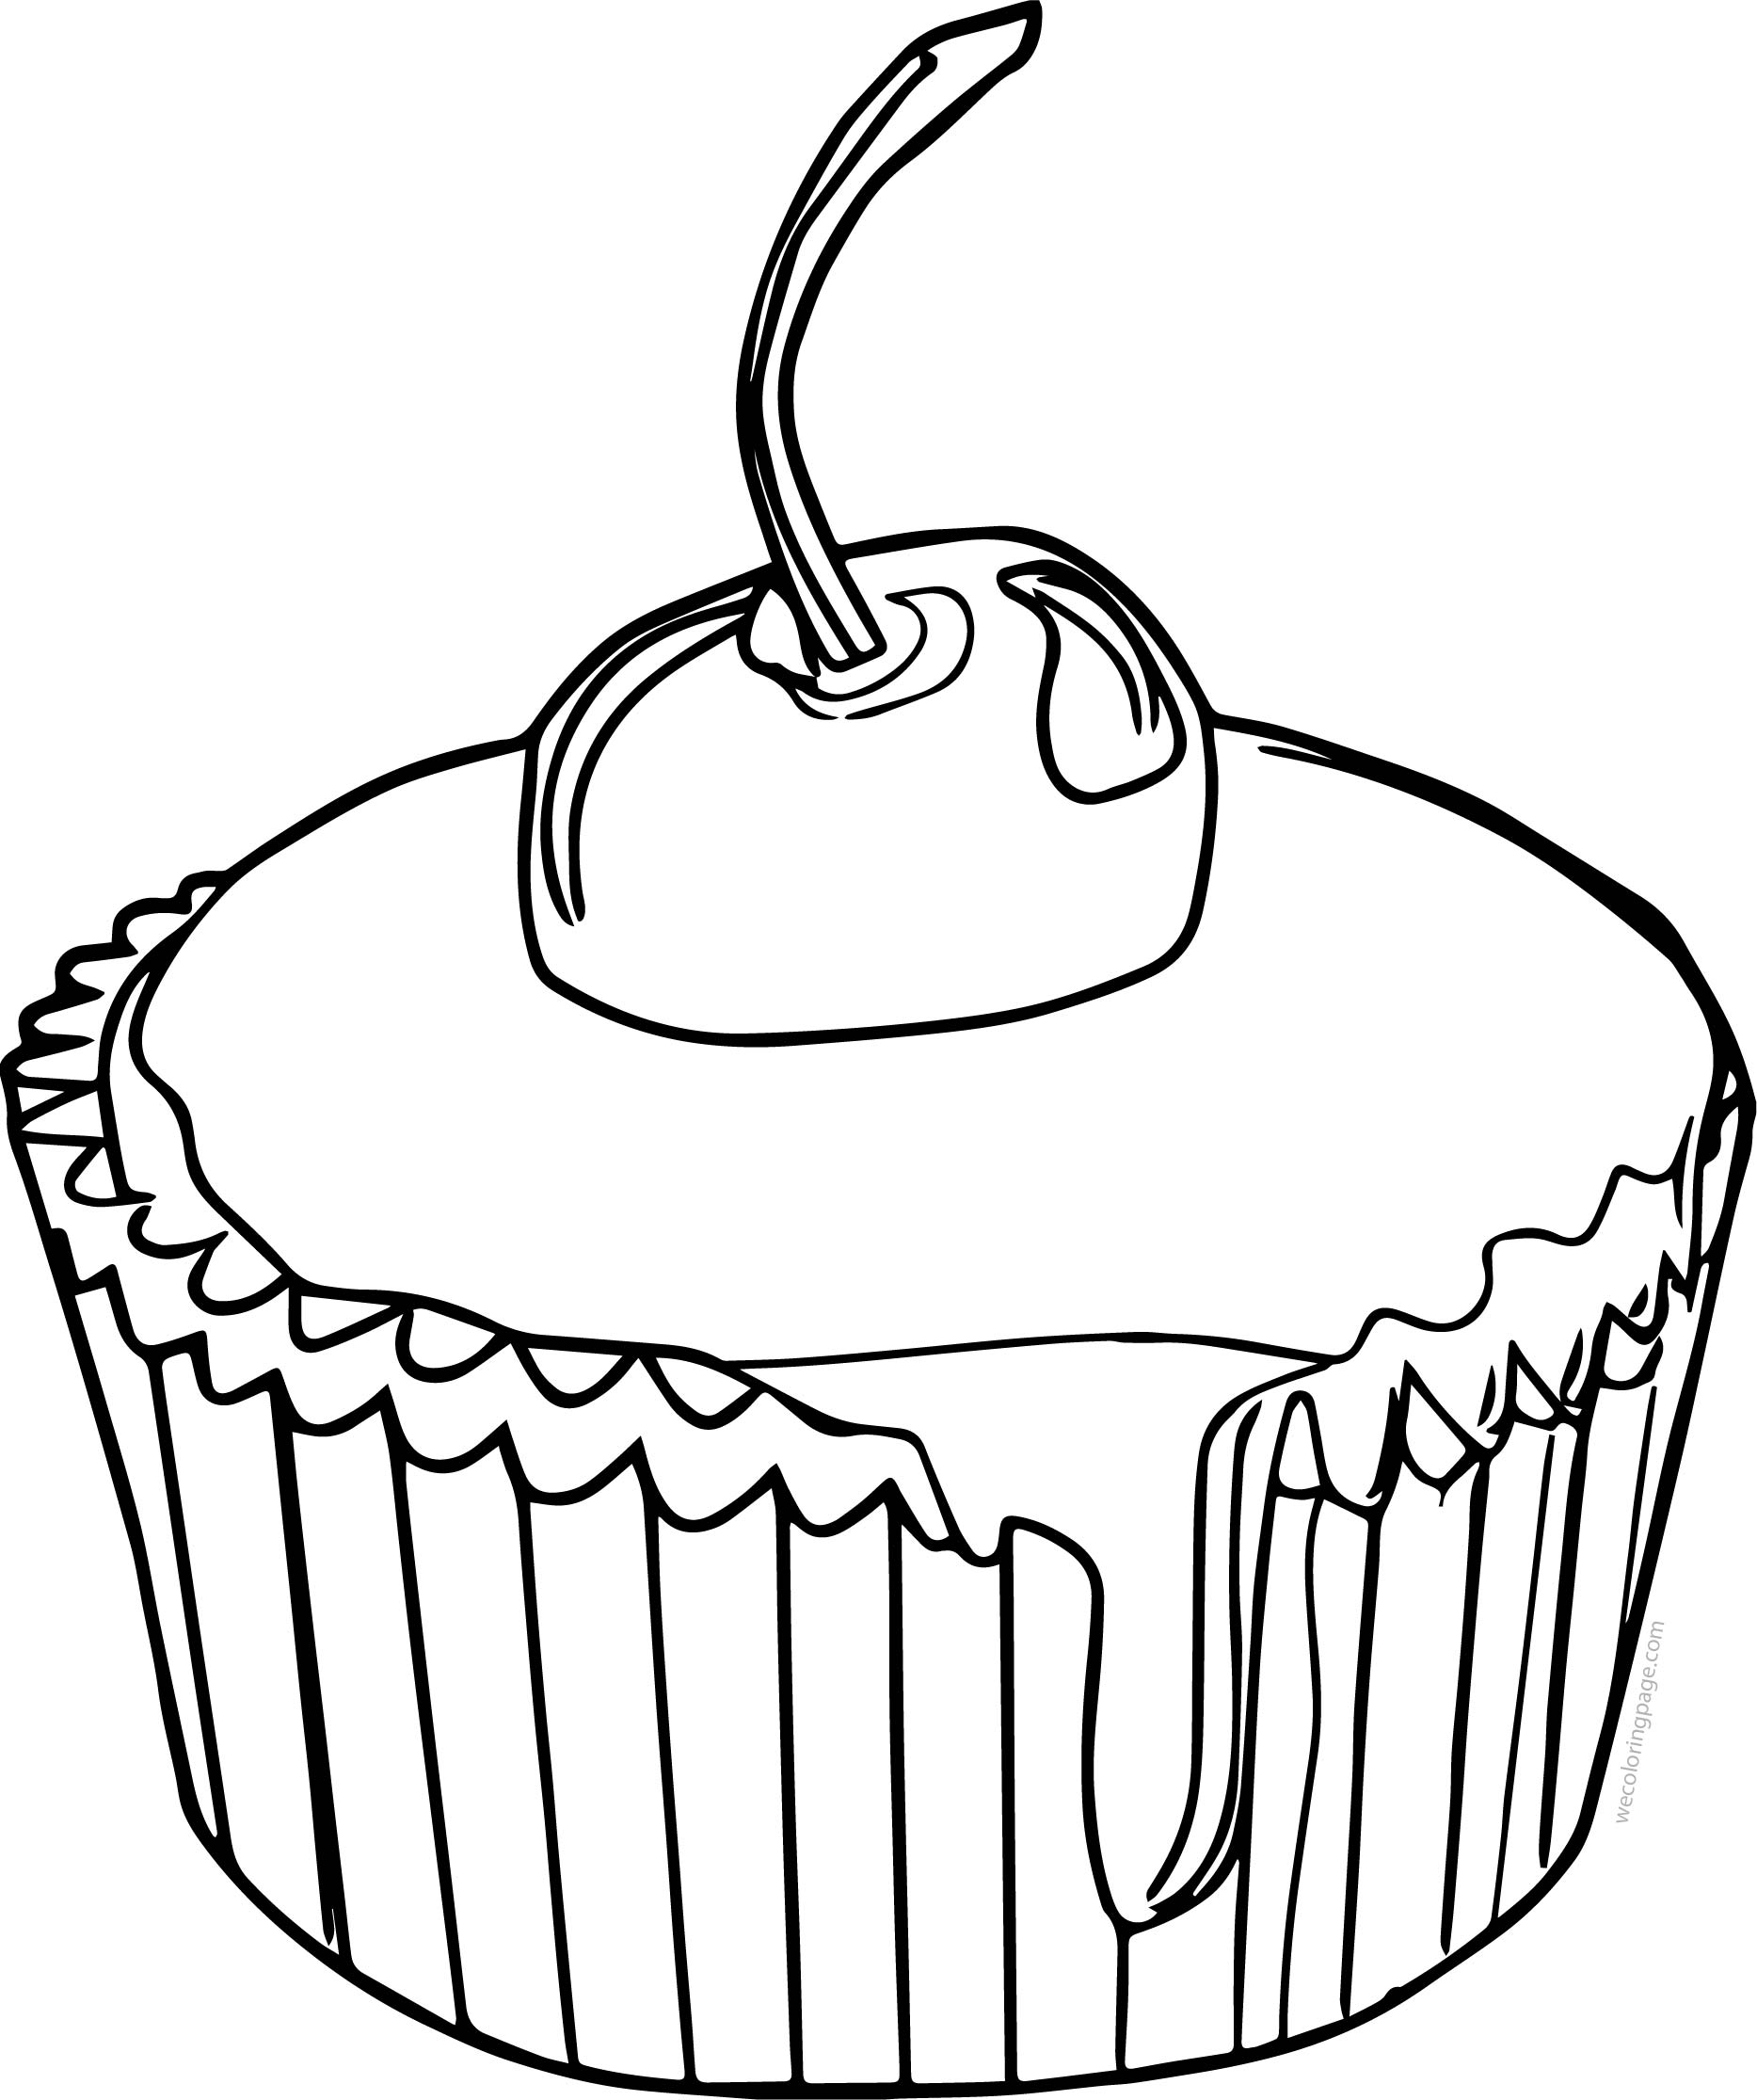 Drawing Cake Colour Drawing Cupcake Cup Cake Cherry Coloring Page